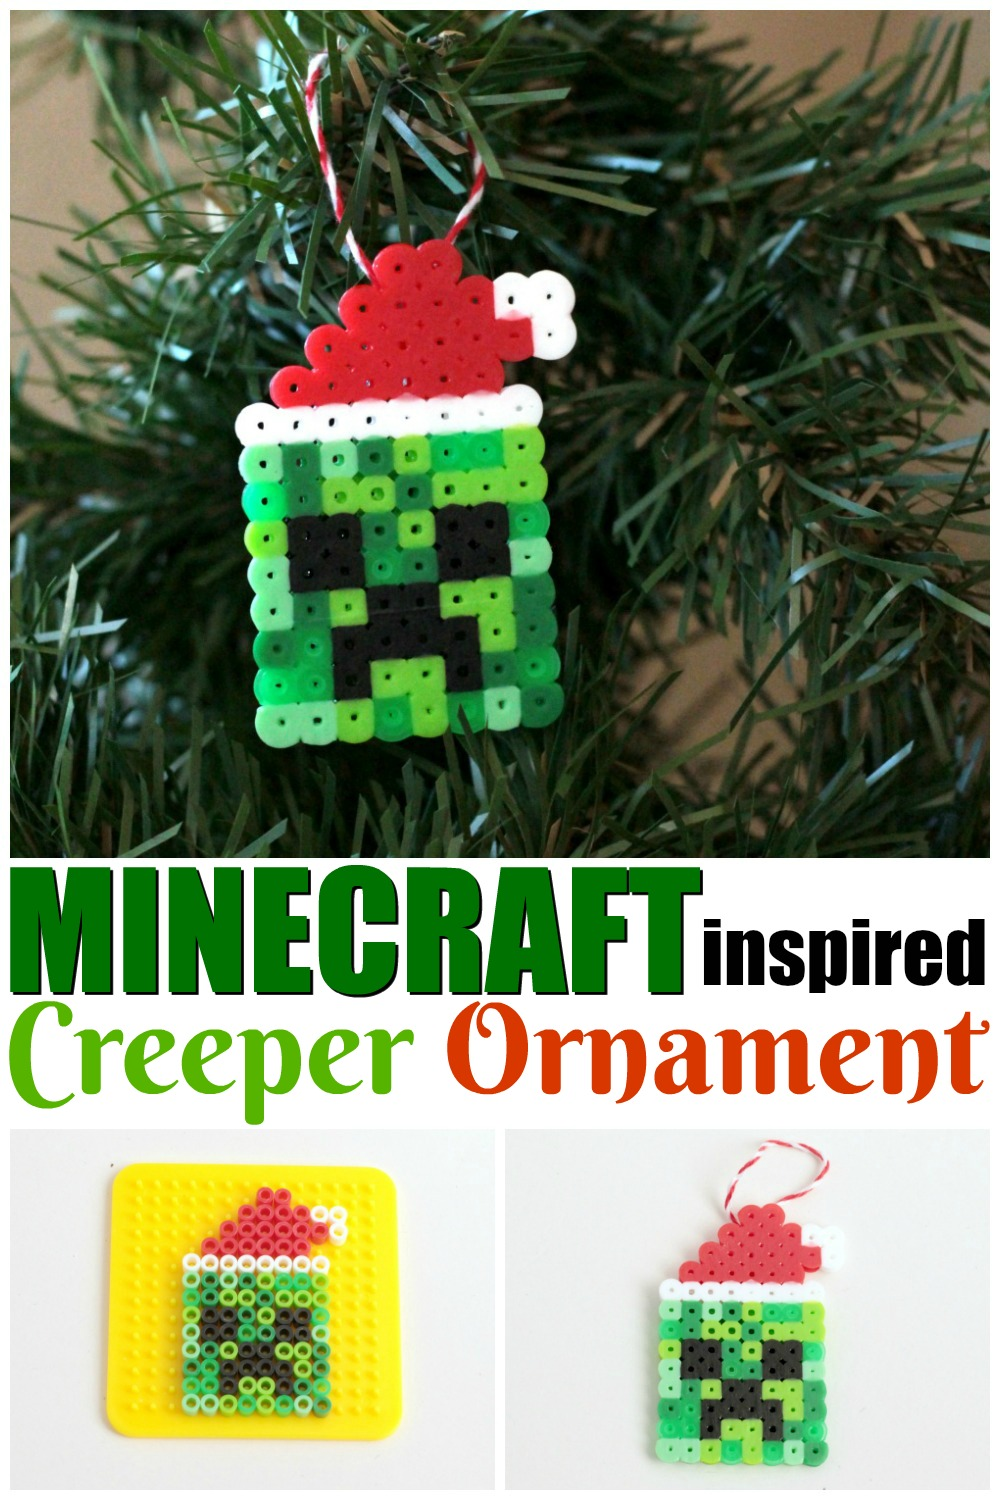 Minecraft Inspired Creeper Ornament Christmas Crafts For Kids Diy Xmas Ornaments Holiday Crafts